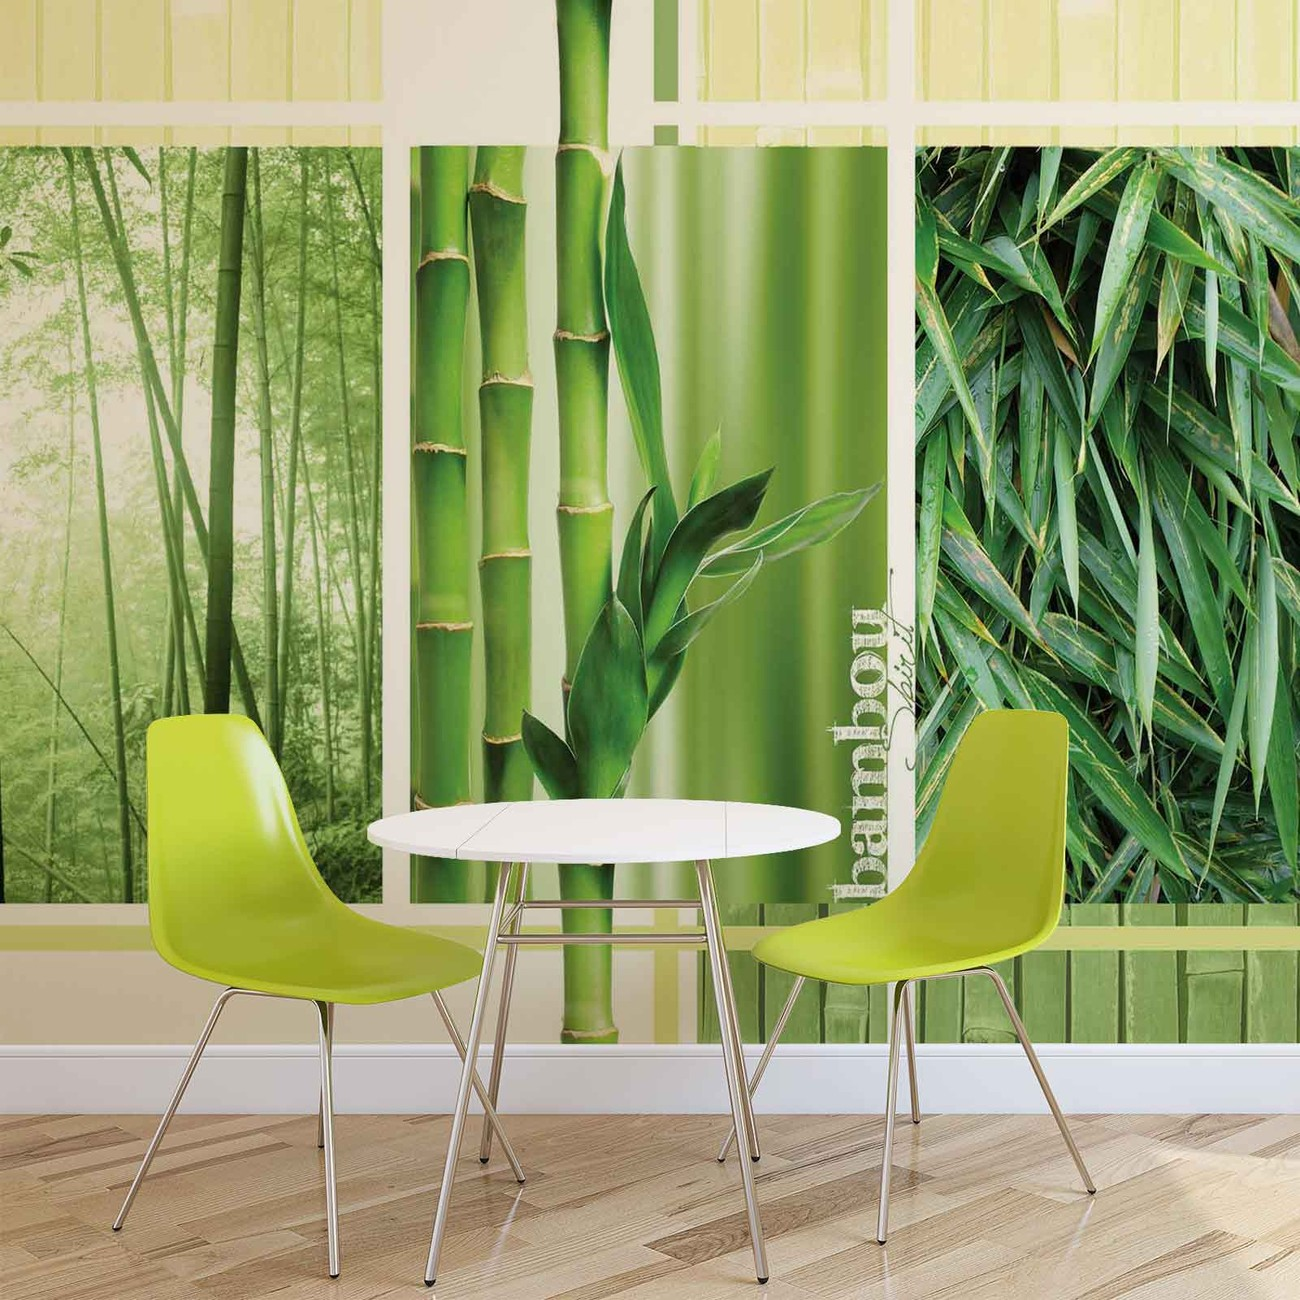 Bamboo forest nature wall paper mural buy at for Bamboo forest mural